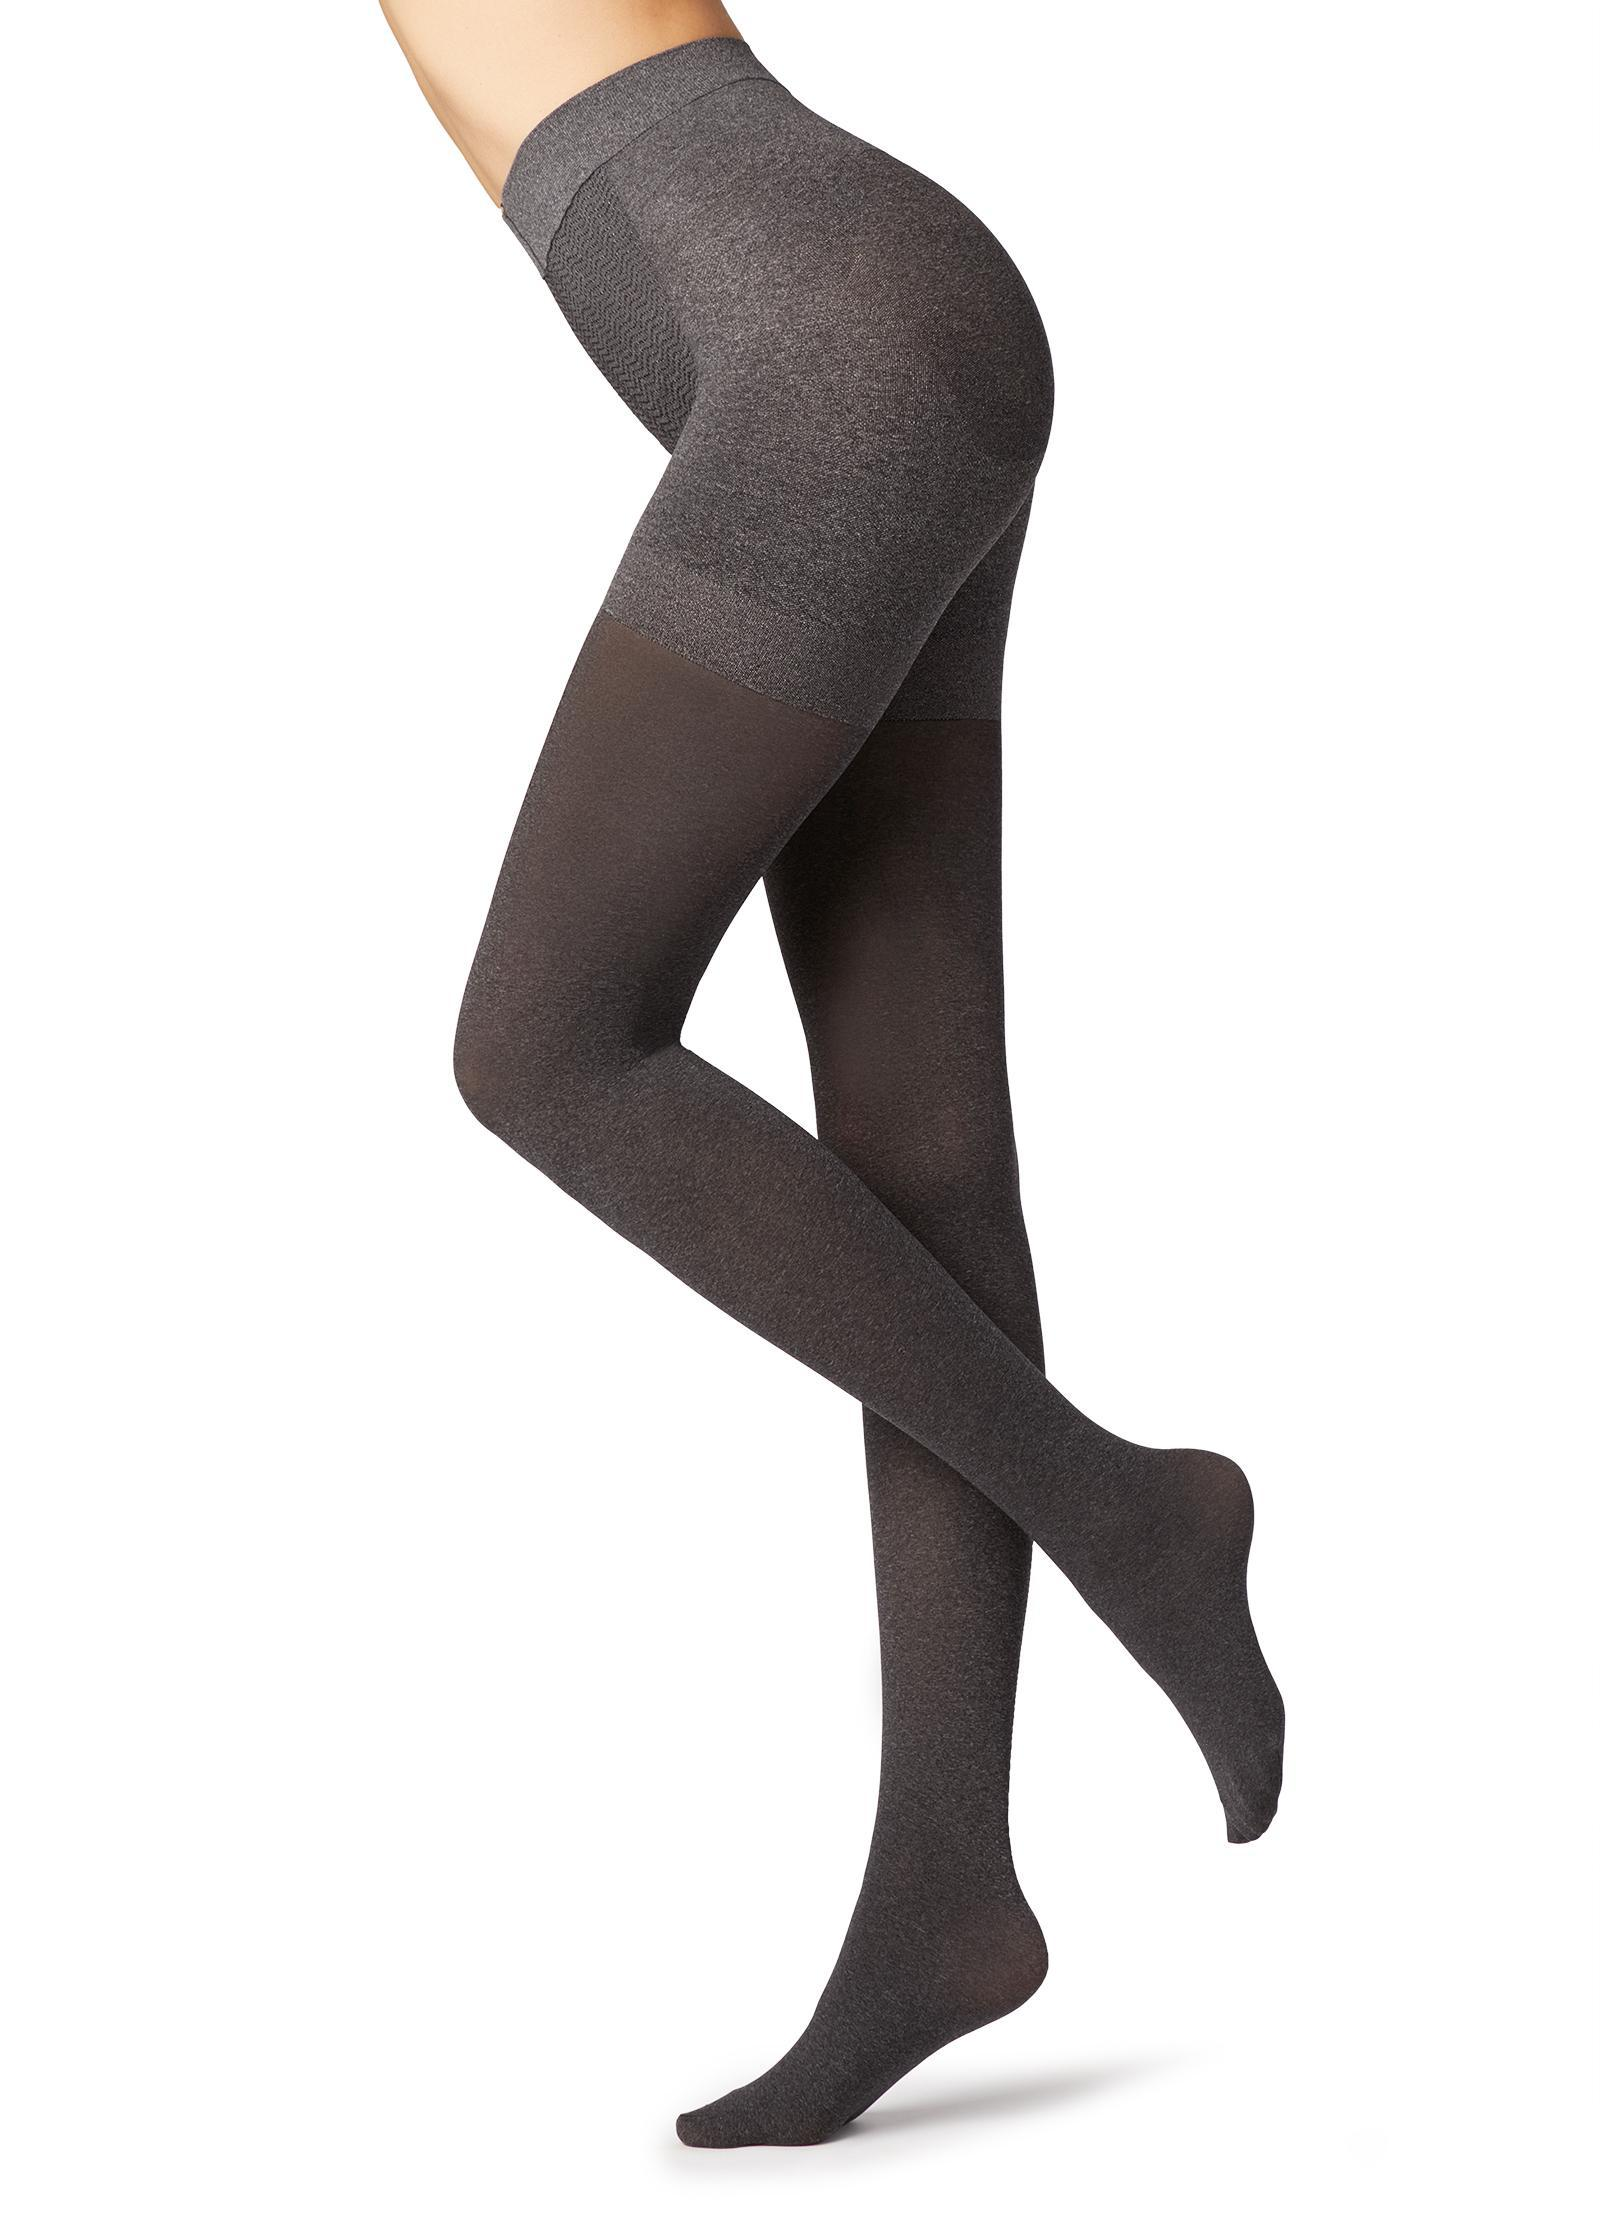 13b4bd6b336 Lyst - Calzedonia 50 Denier Total Shaper Tights in Gray